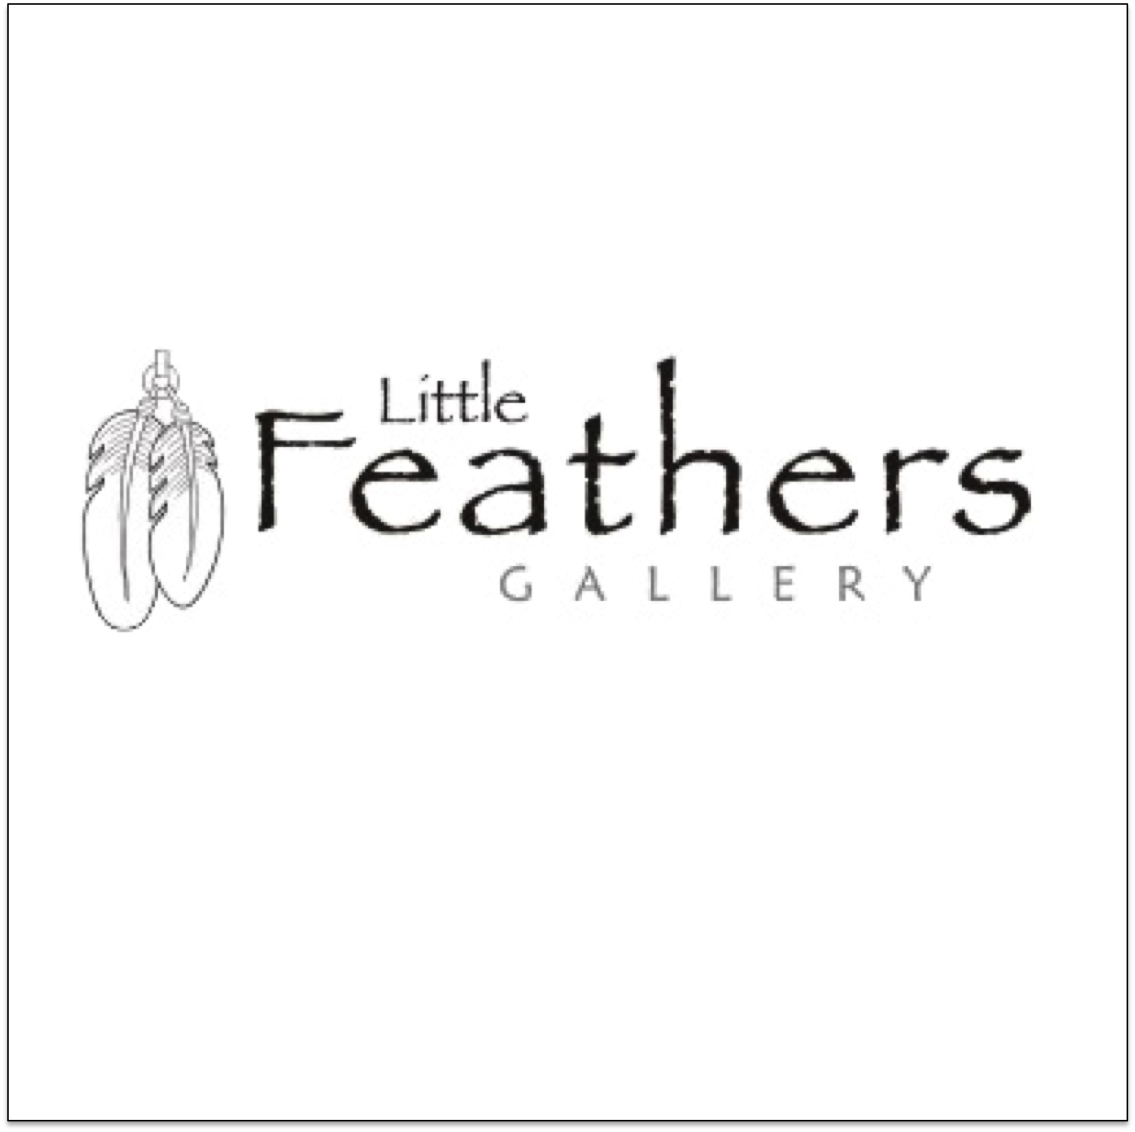 Little Feathers Gallery  St Agnes, Cornwall